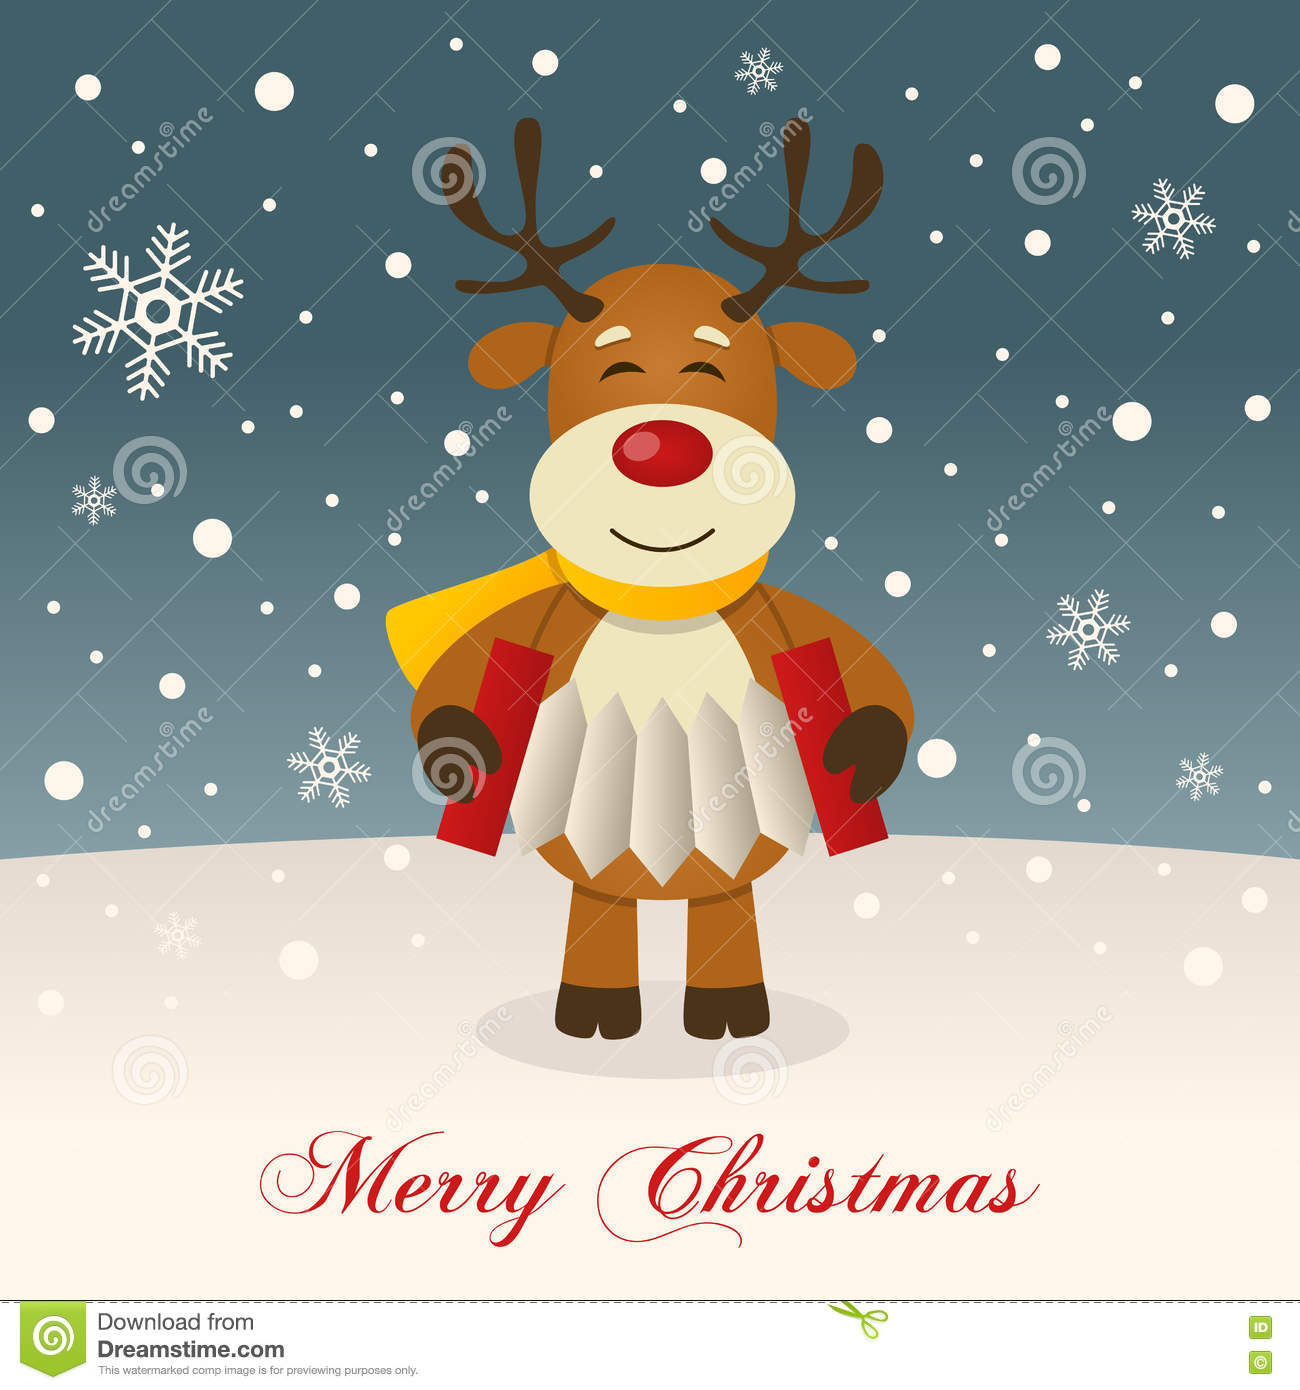 Wishing Merry Christmas With A Reindeer Stock Vector Illustration